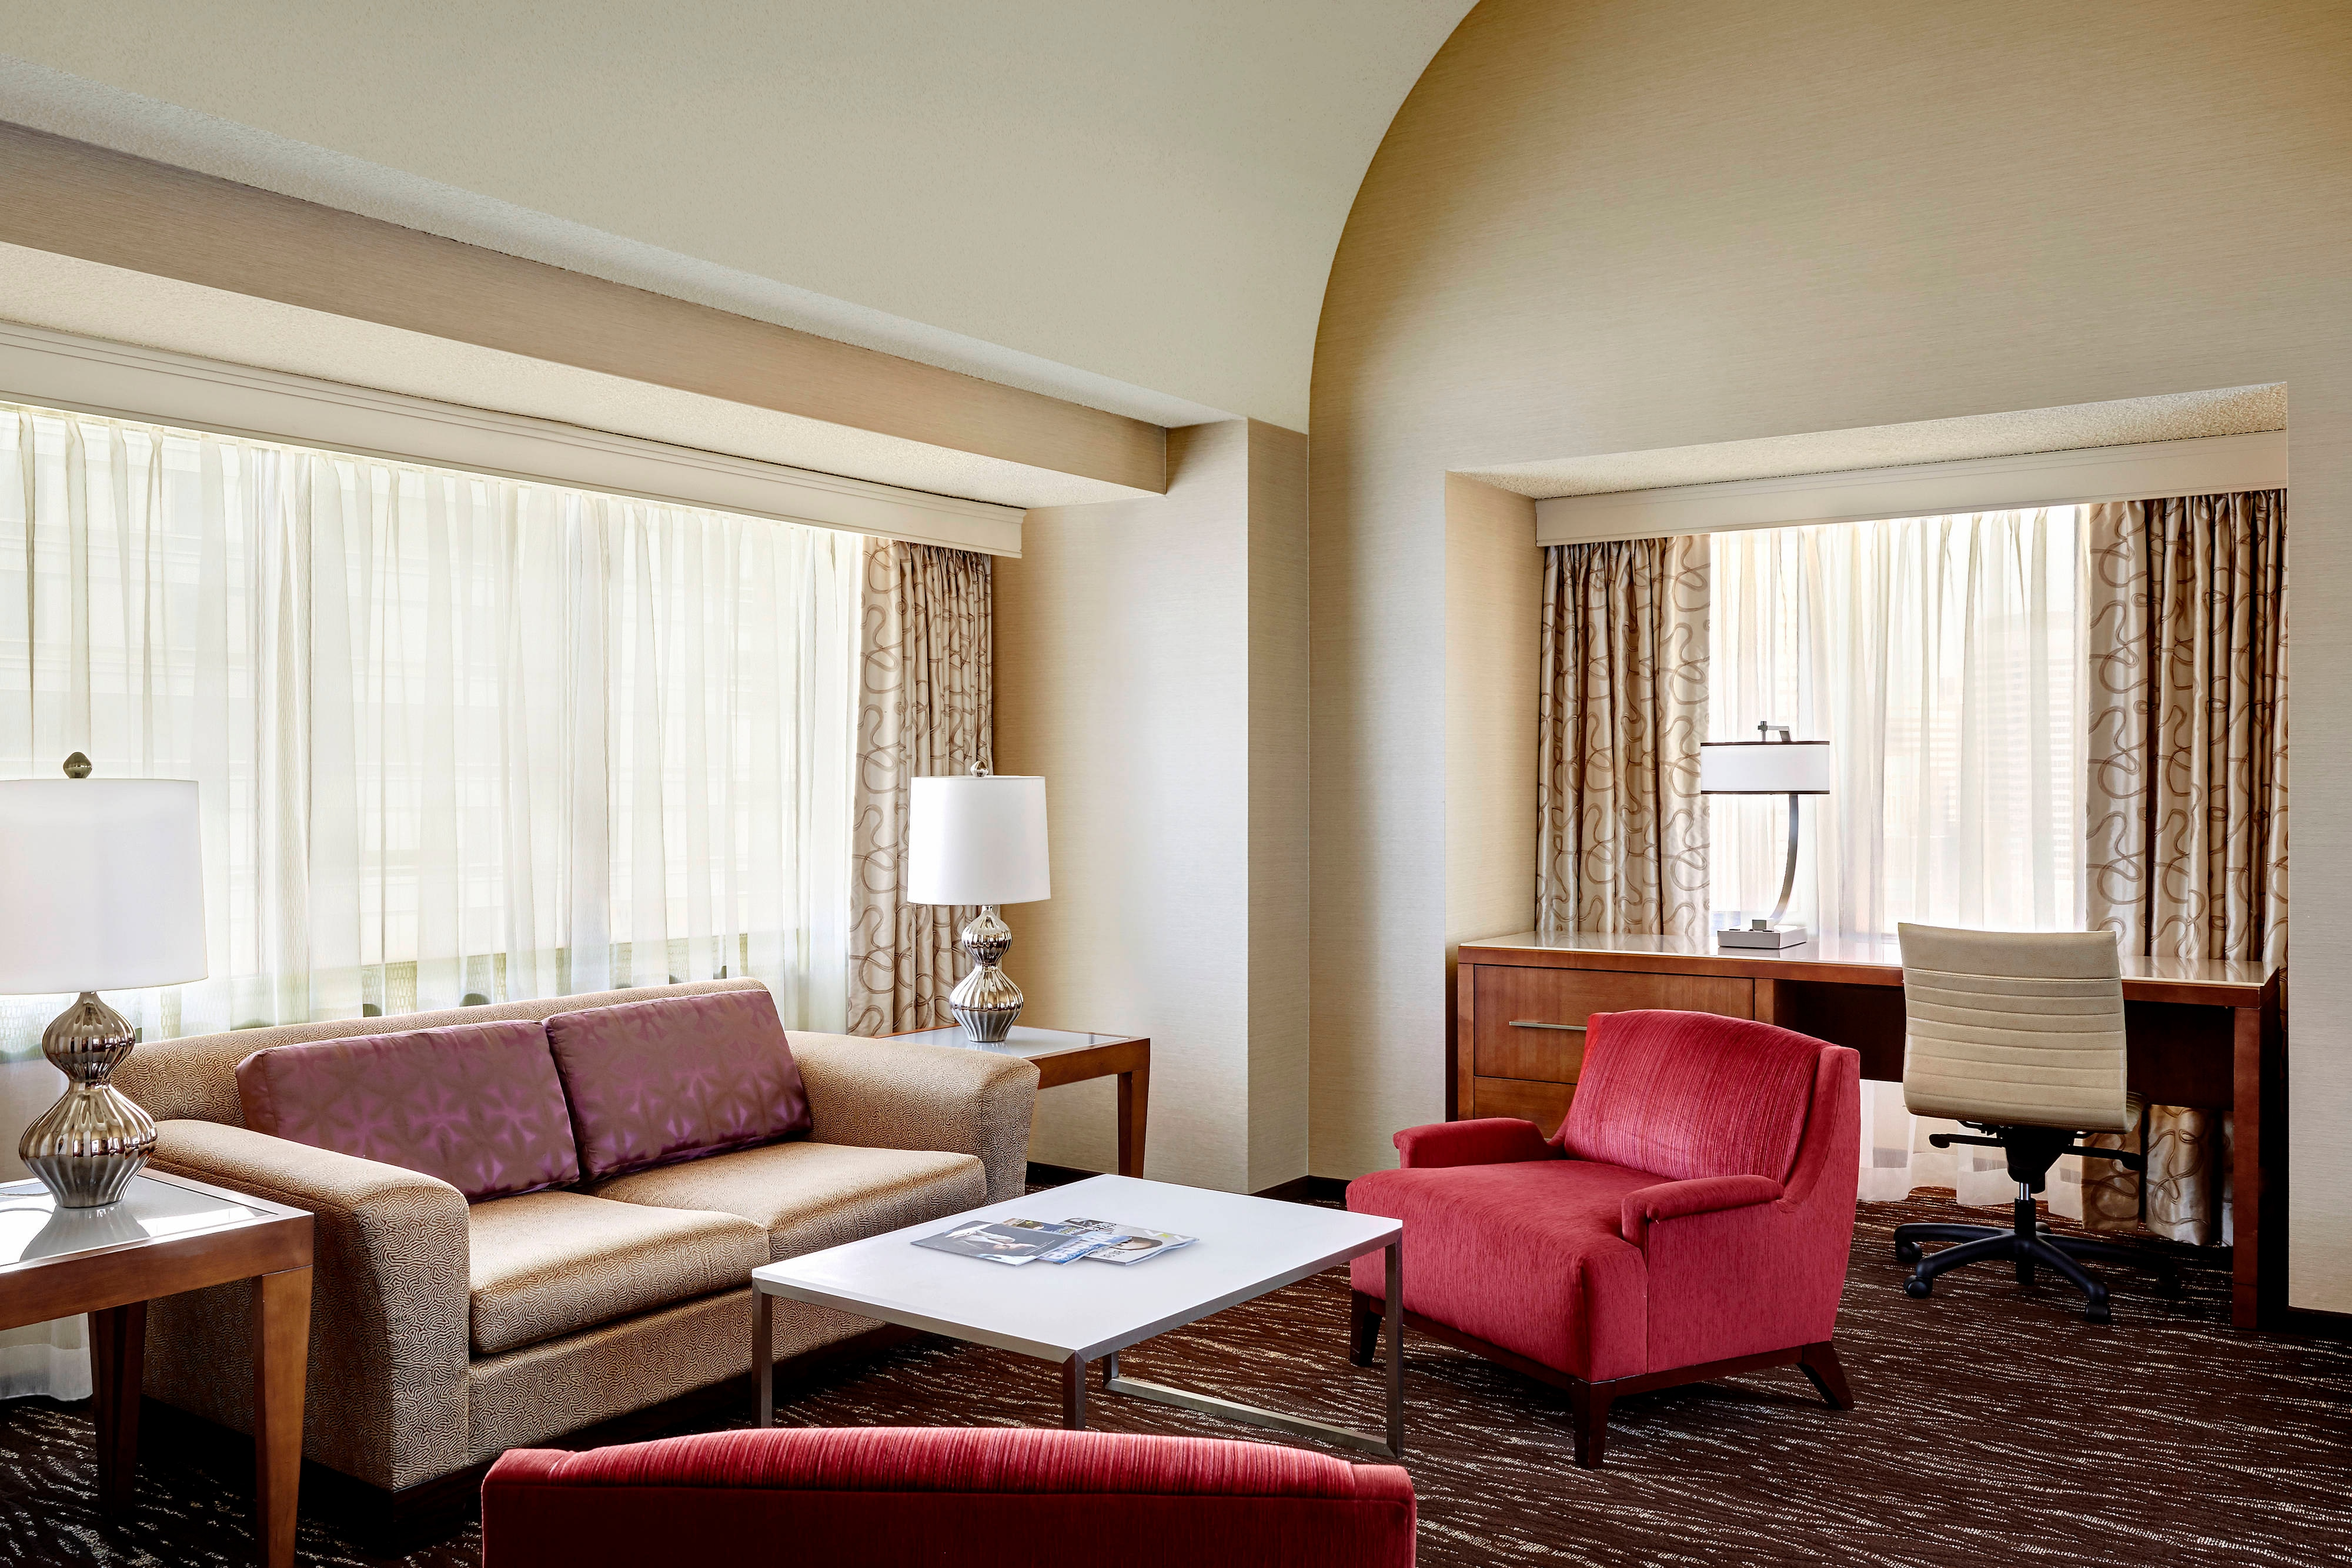 Deluxe King Junior Suite